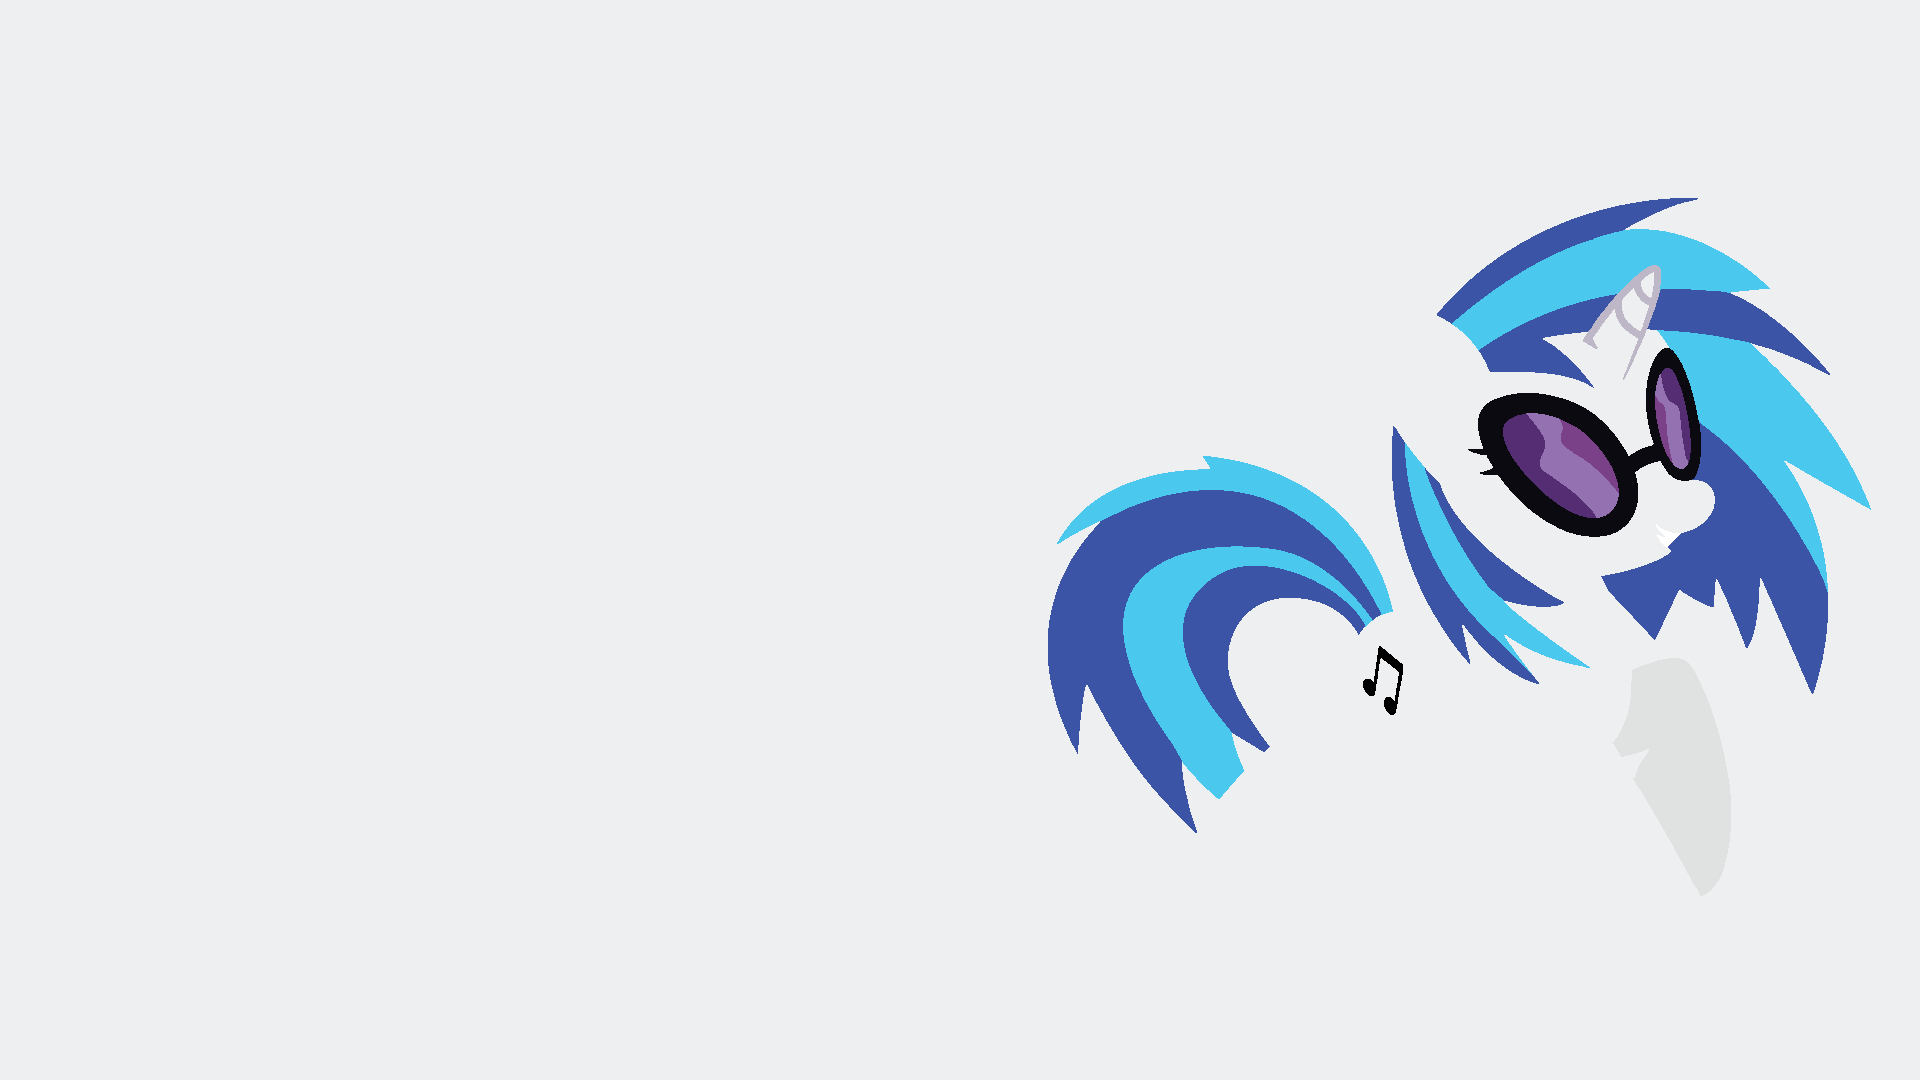 DJ Pon3 Minimalistic Wallpaper by Kitana-Coldfire